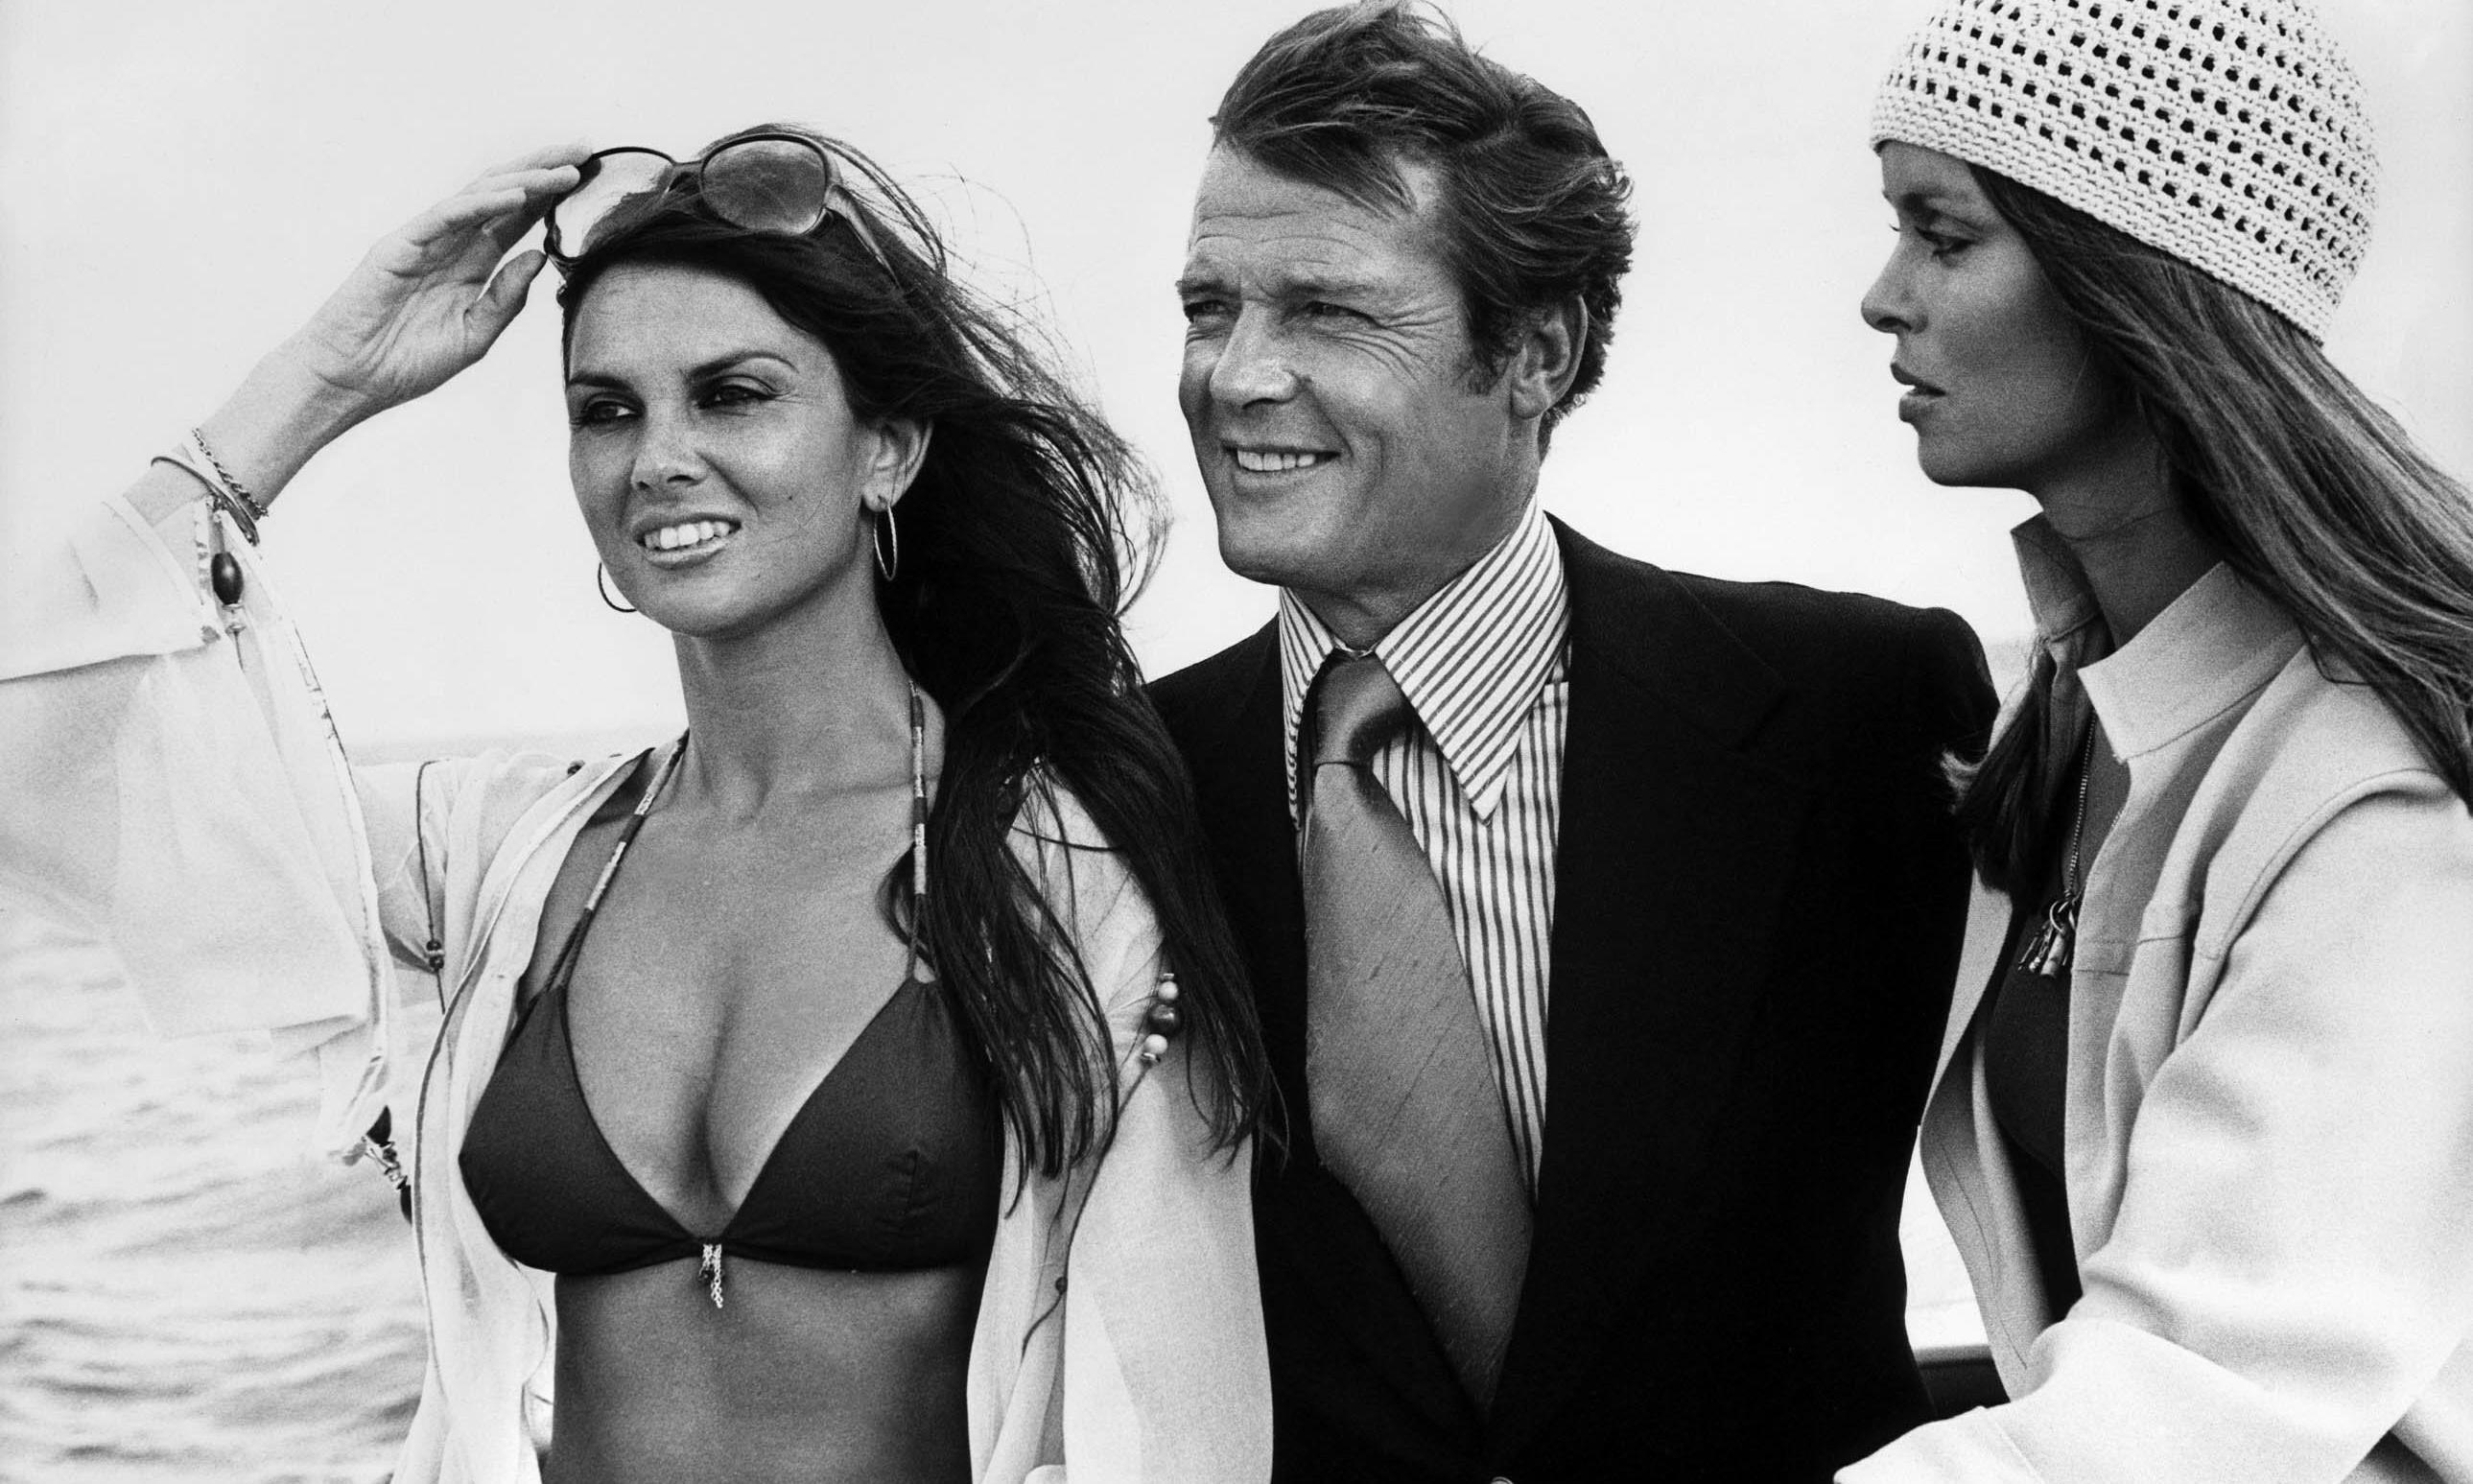 70s Bond girl Caroline Munro: 'I loved Roger Moore. His knitwear was classic'